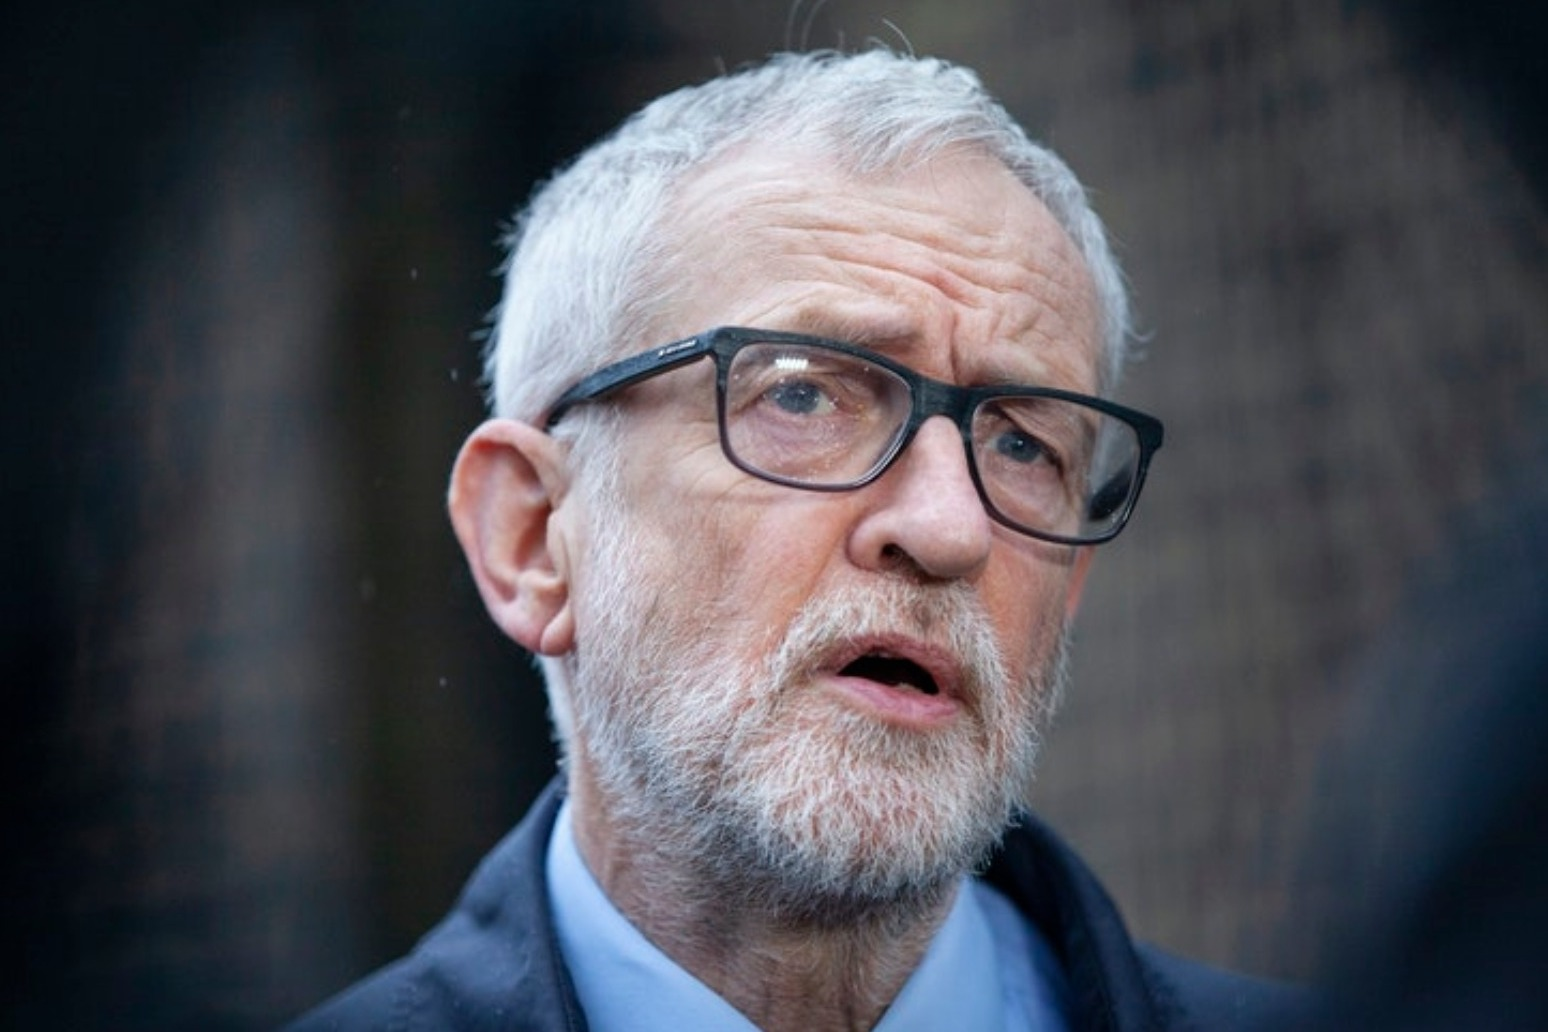 Campaigners raise £100,000 for Jeremy Corbyn 'legal fund' amid anti-Semitism row